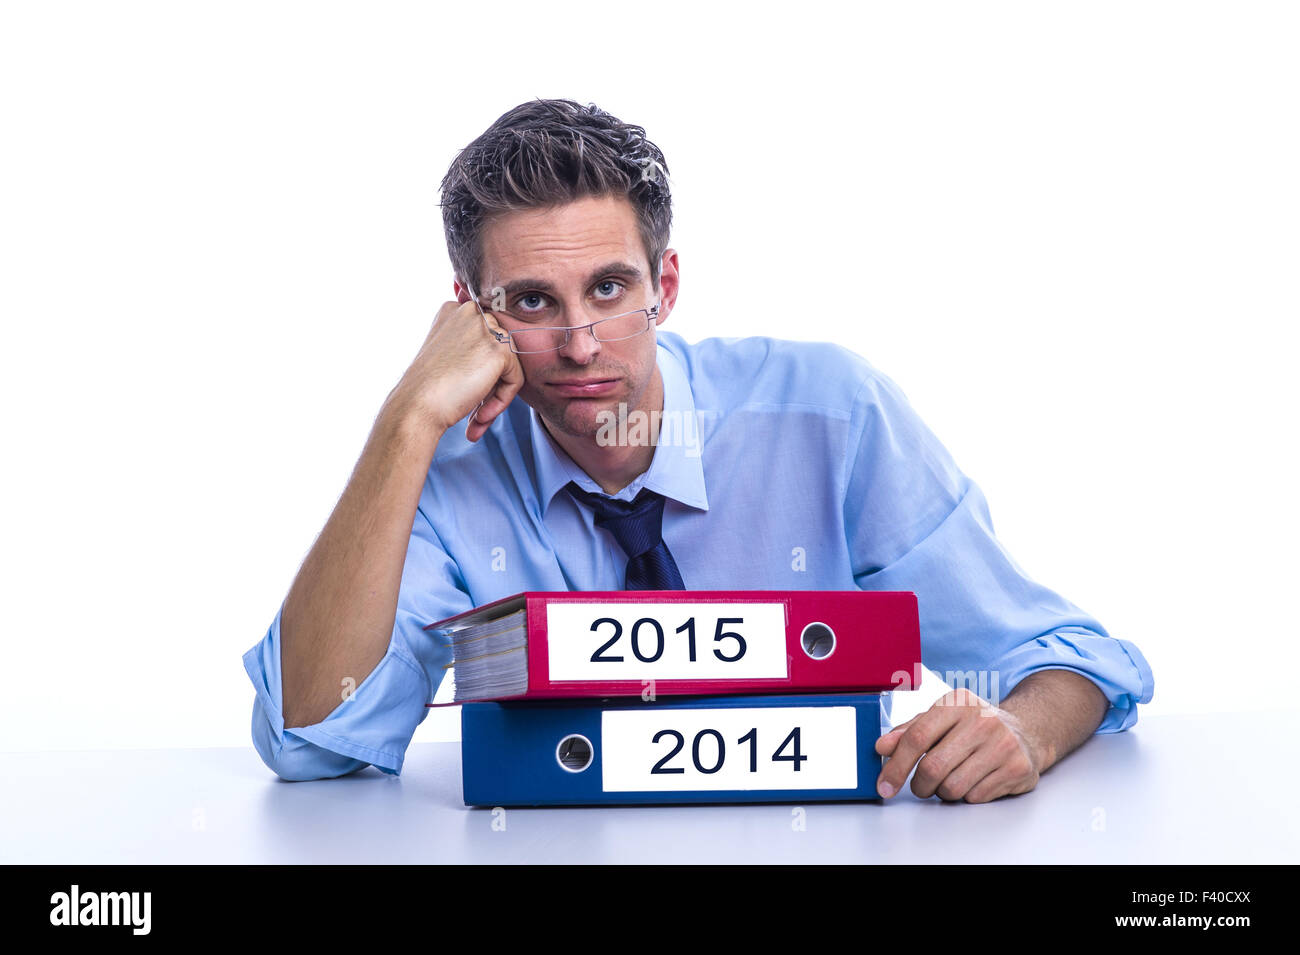 Year 2014 2015 - Stock Image